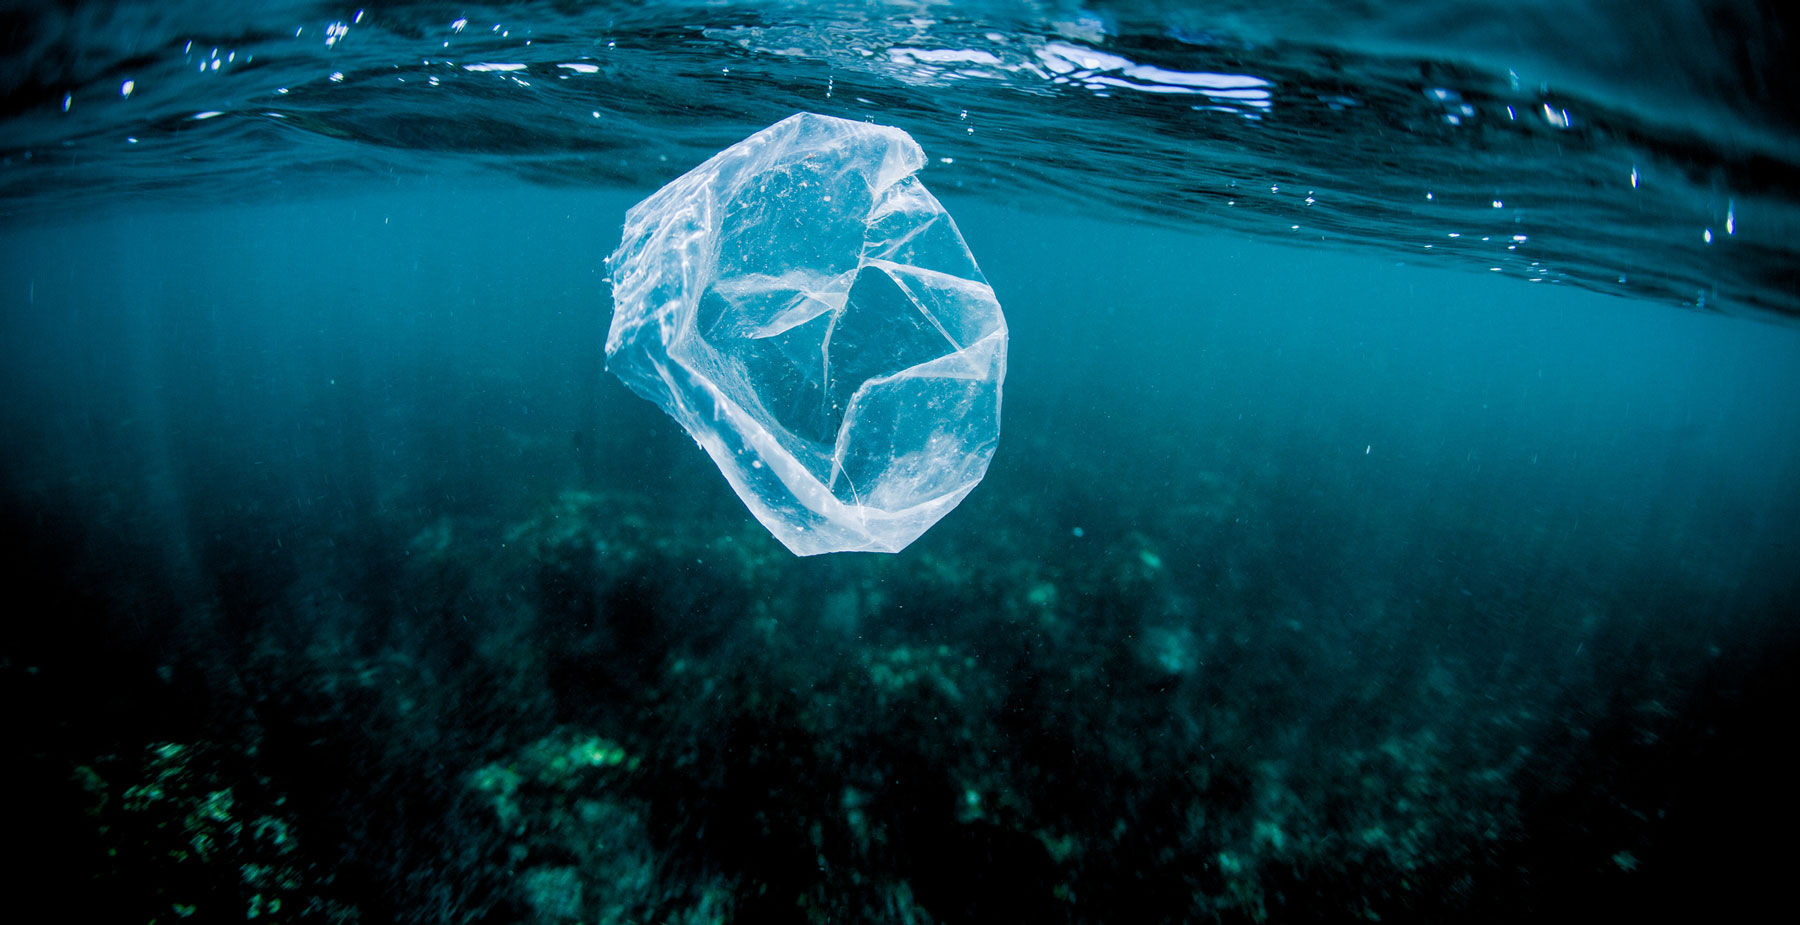 Discarded plastic bag floating in the ocean. (Photo: Getty Images)